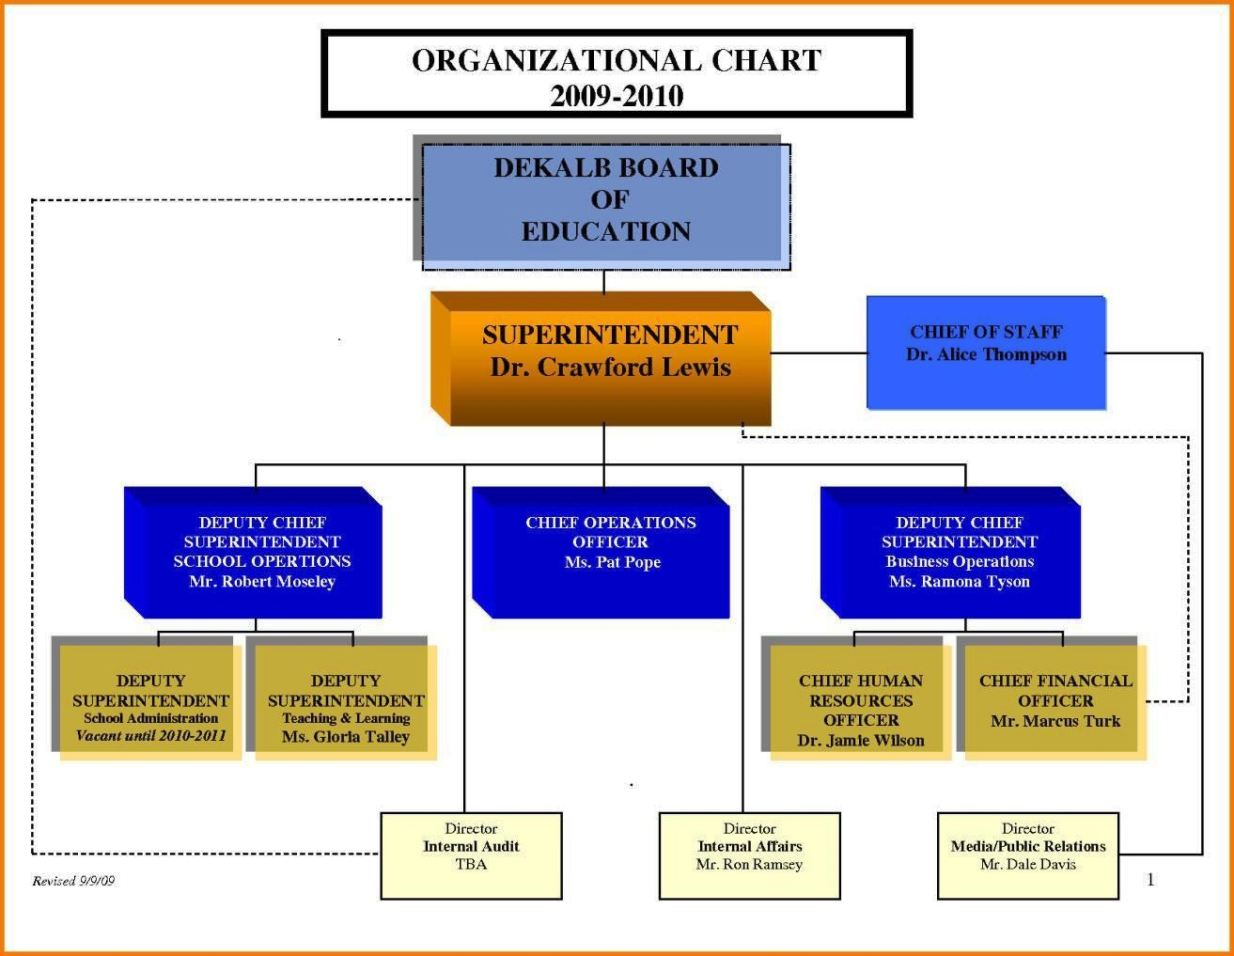 Free Organizational Chart Template Word SampleTemplatess - Free organizational chart template word 2010